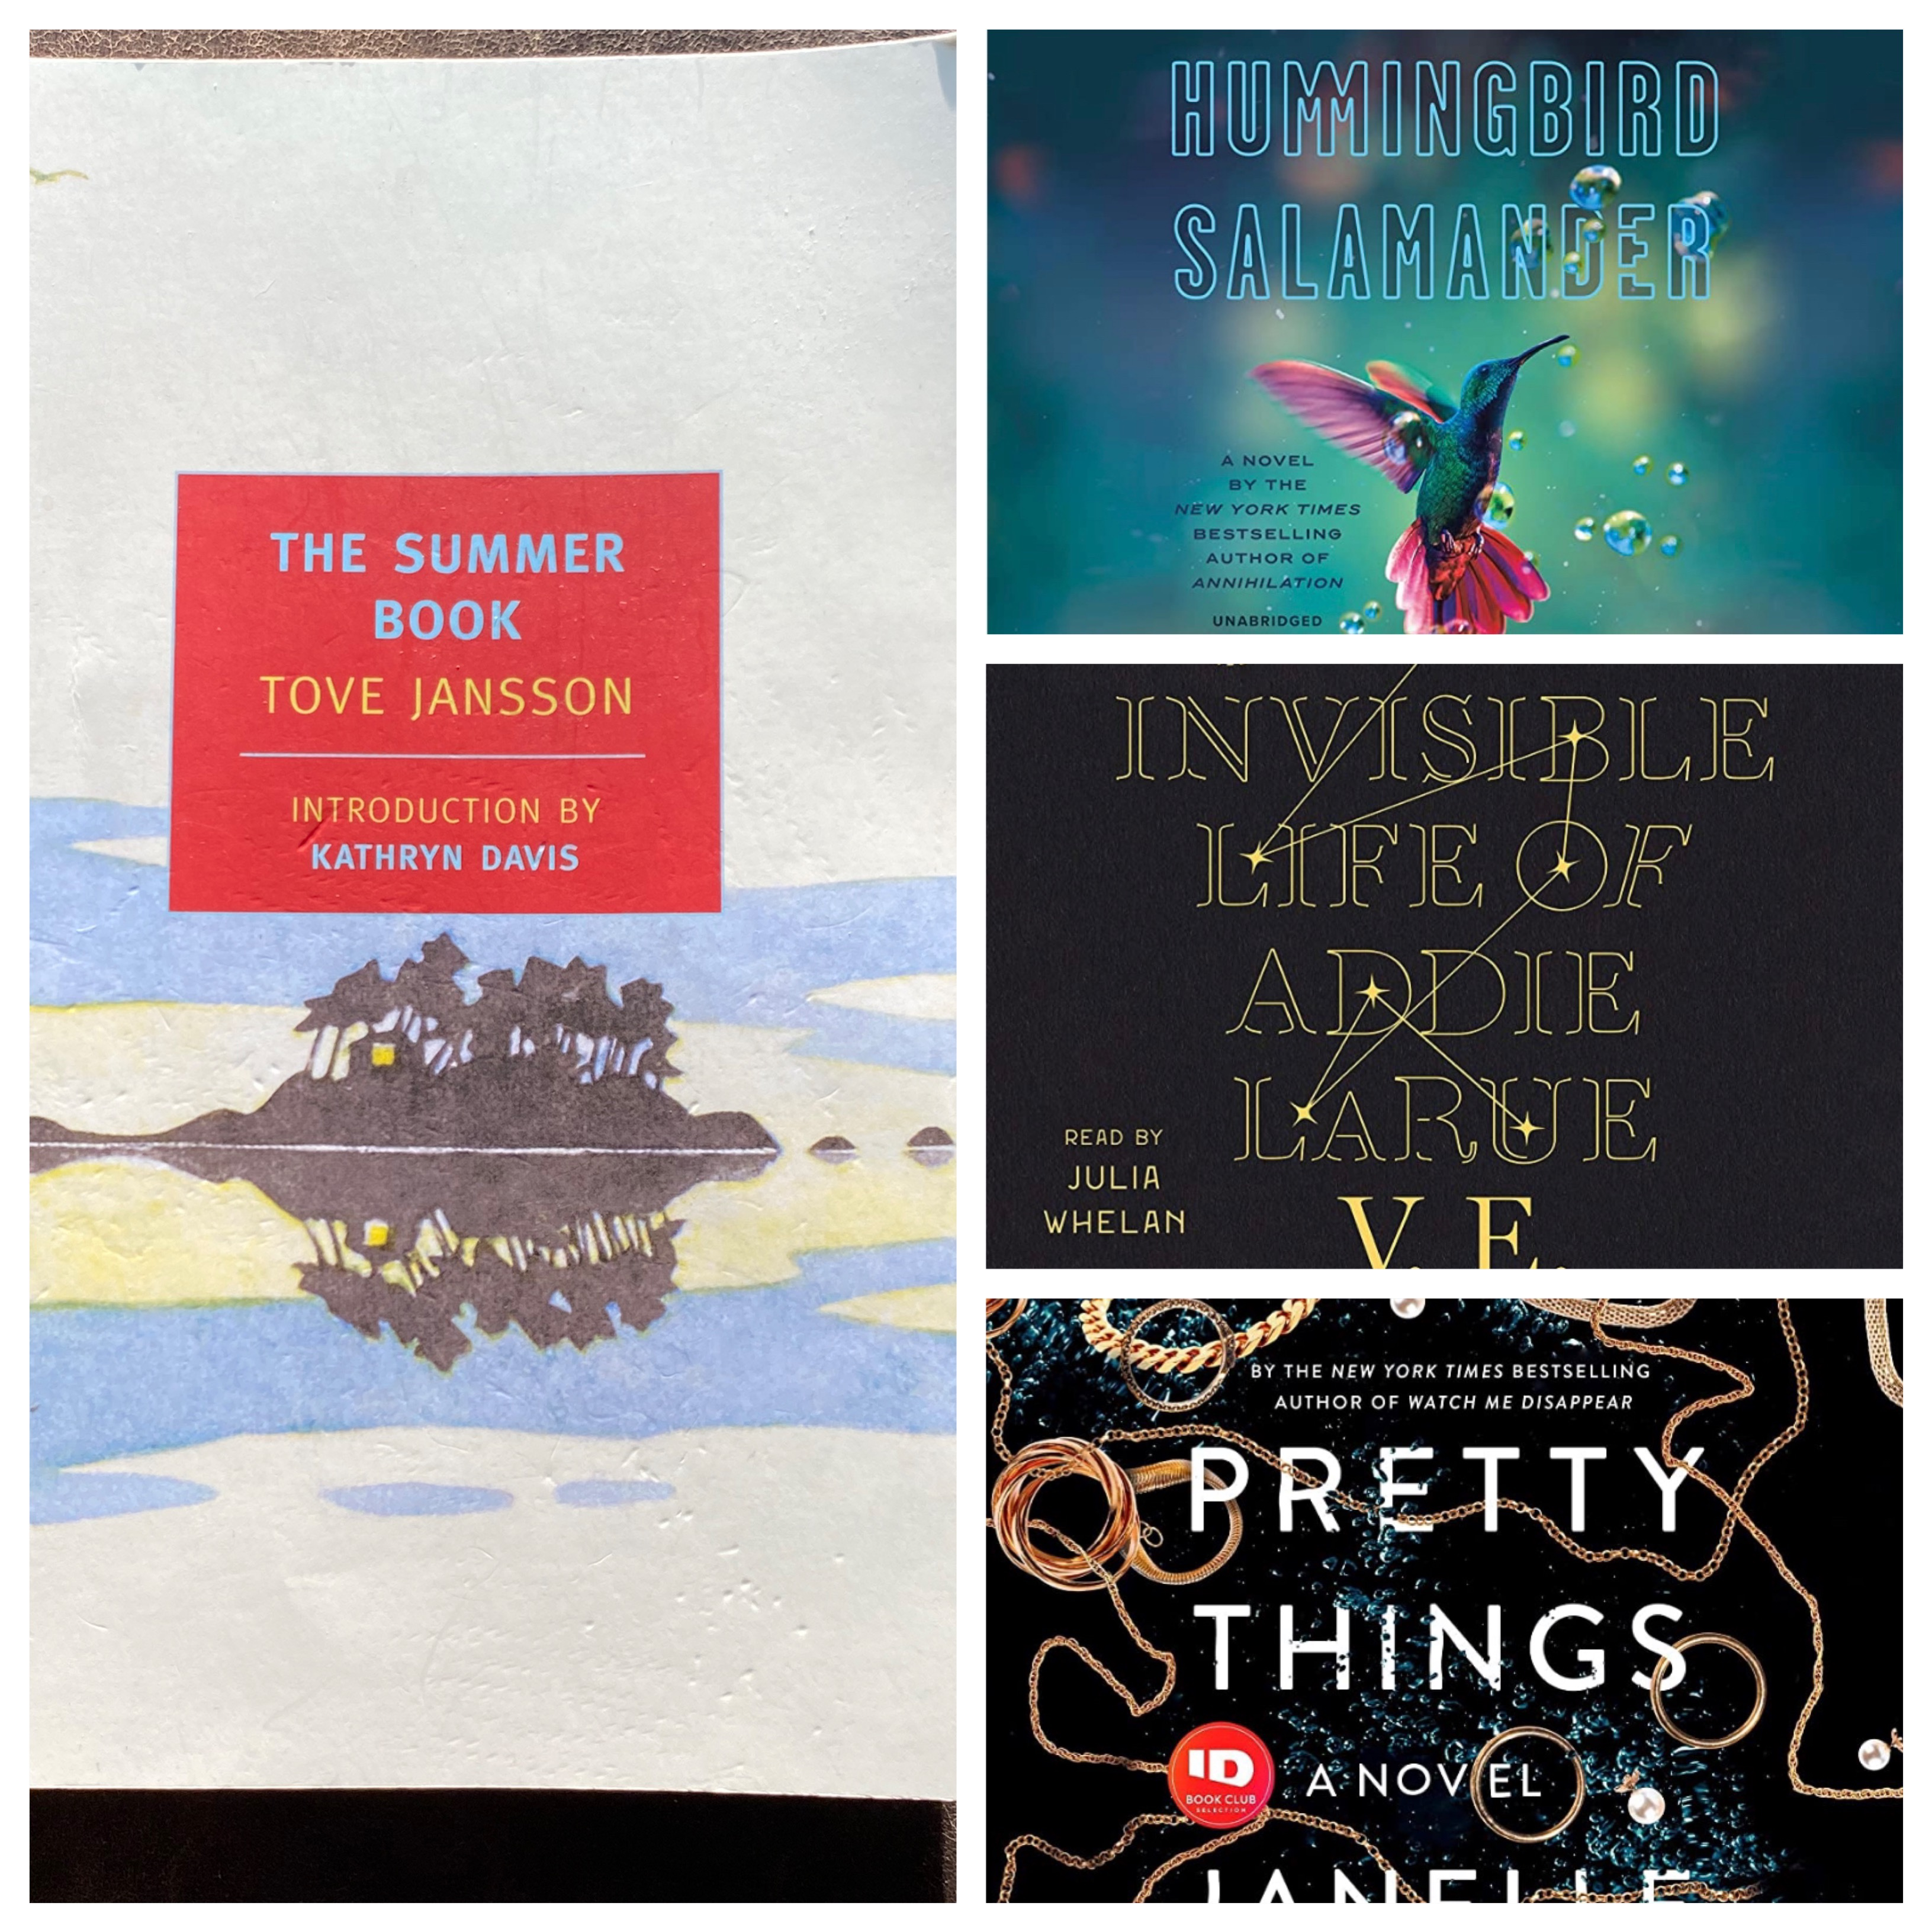 June-July Reads and Listens